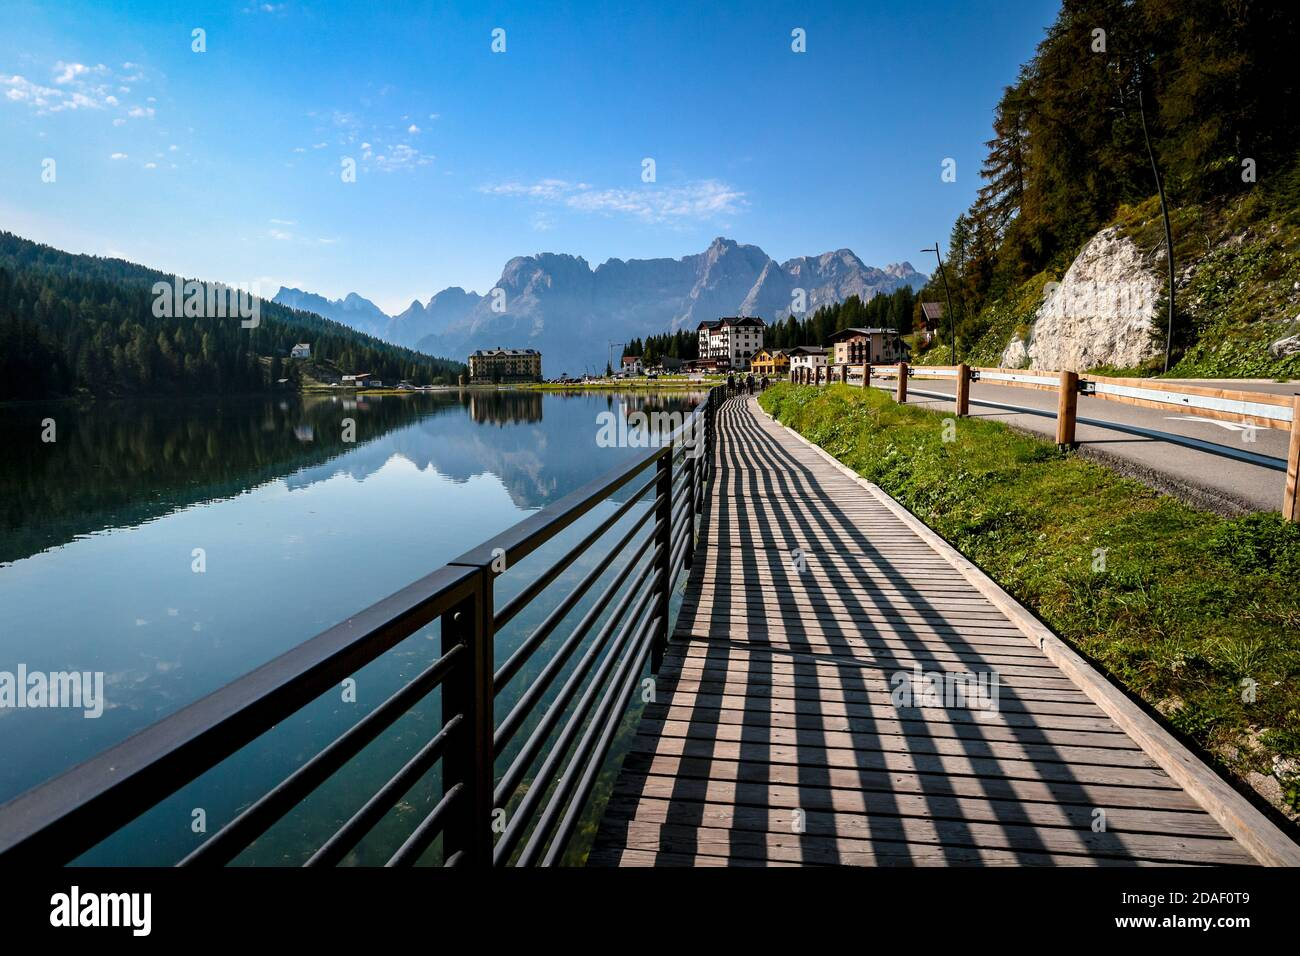 lago-di-misurina-and-hard-lines-of-shado